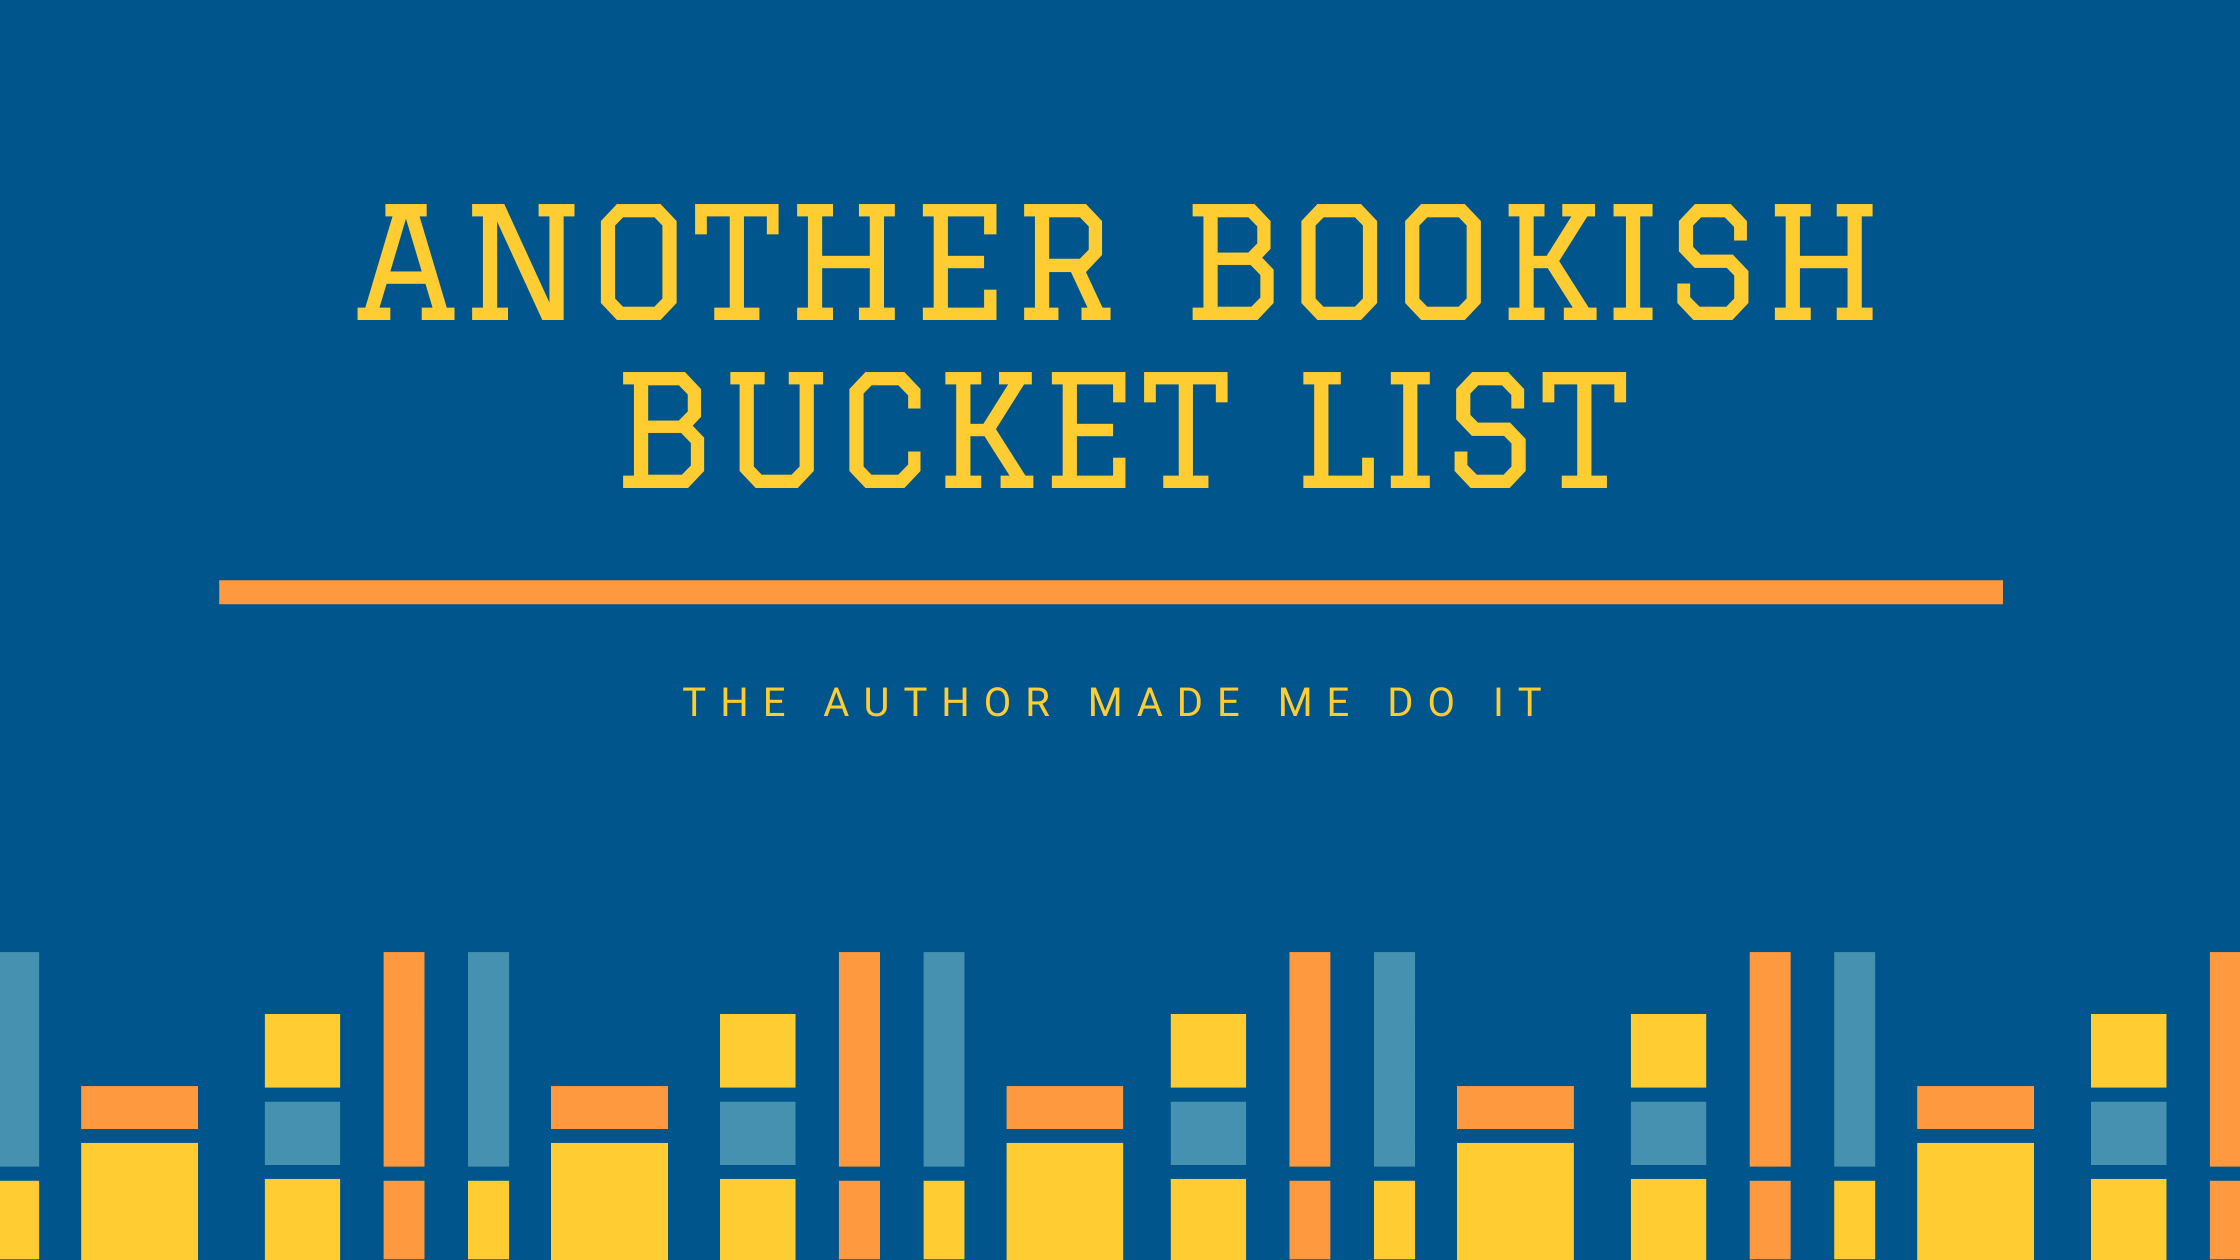 Another bookish bucket list